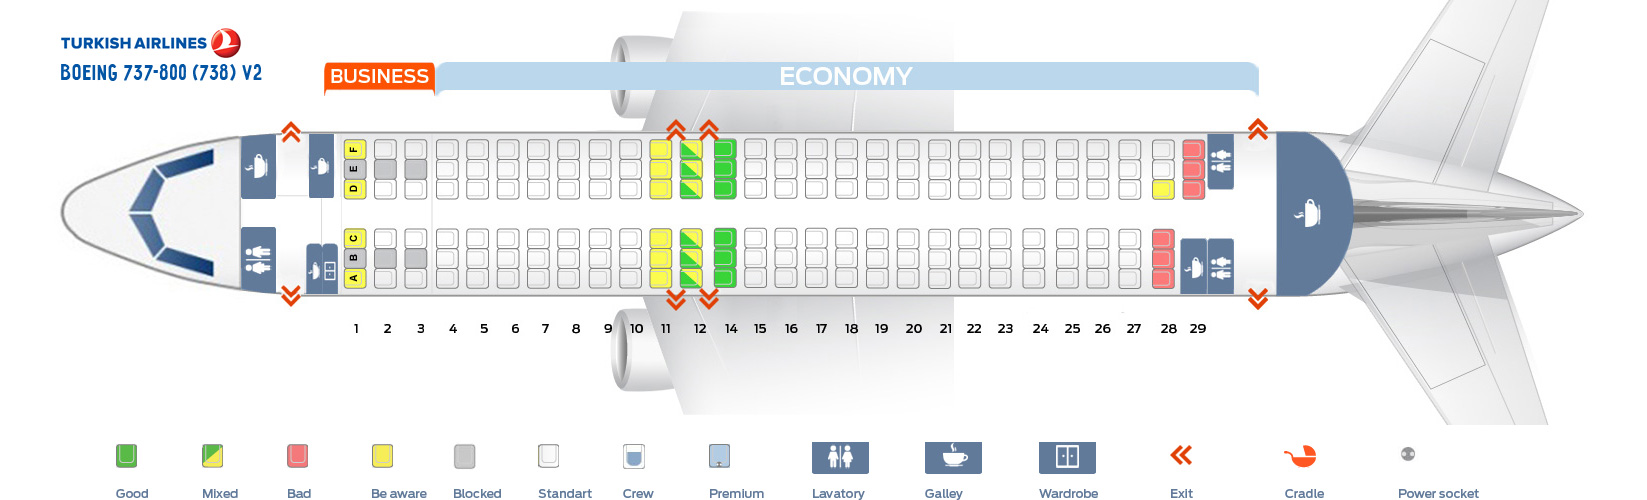 Seat Map Boeing 737-800 V2 Turkish Airlines